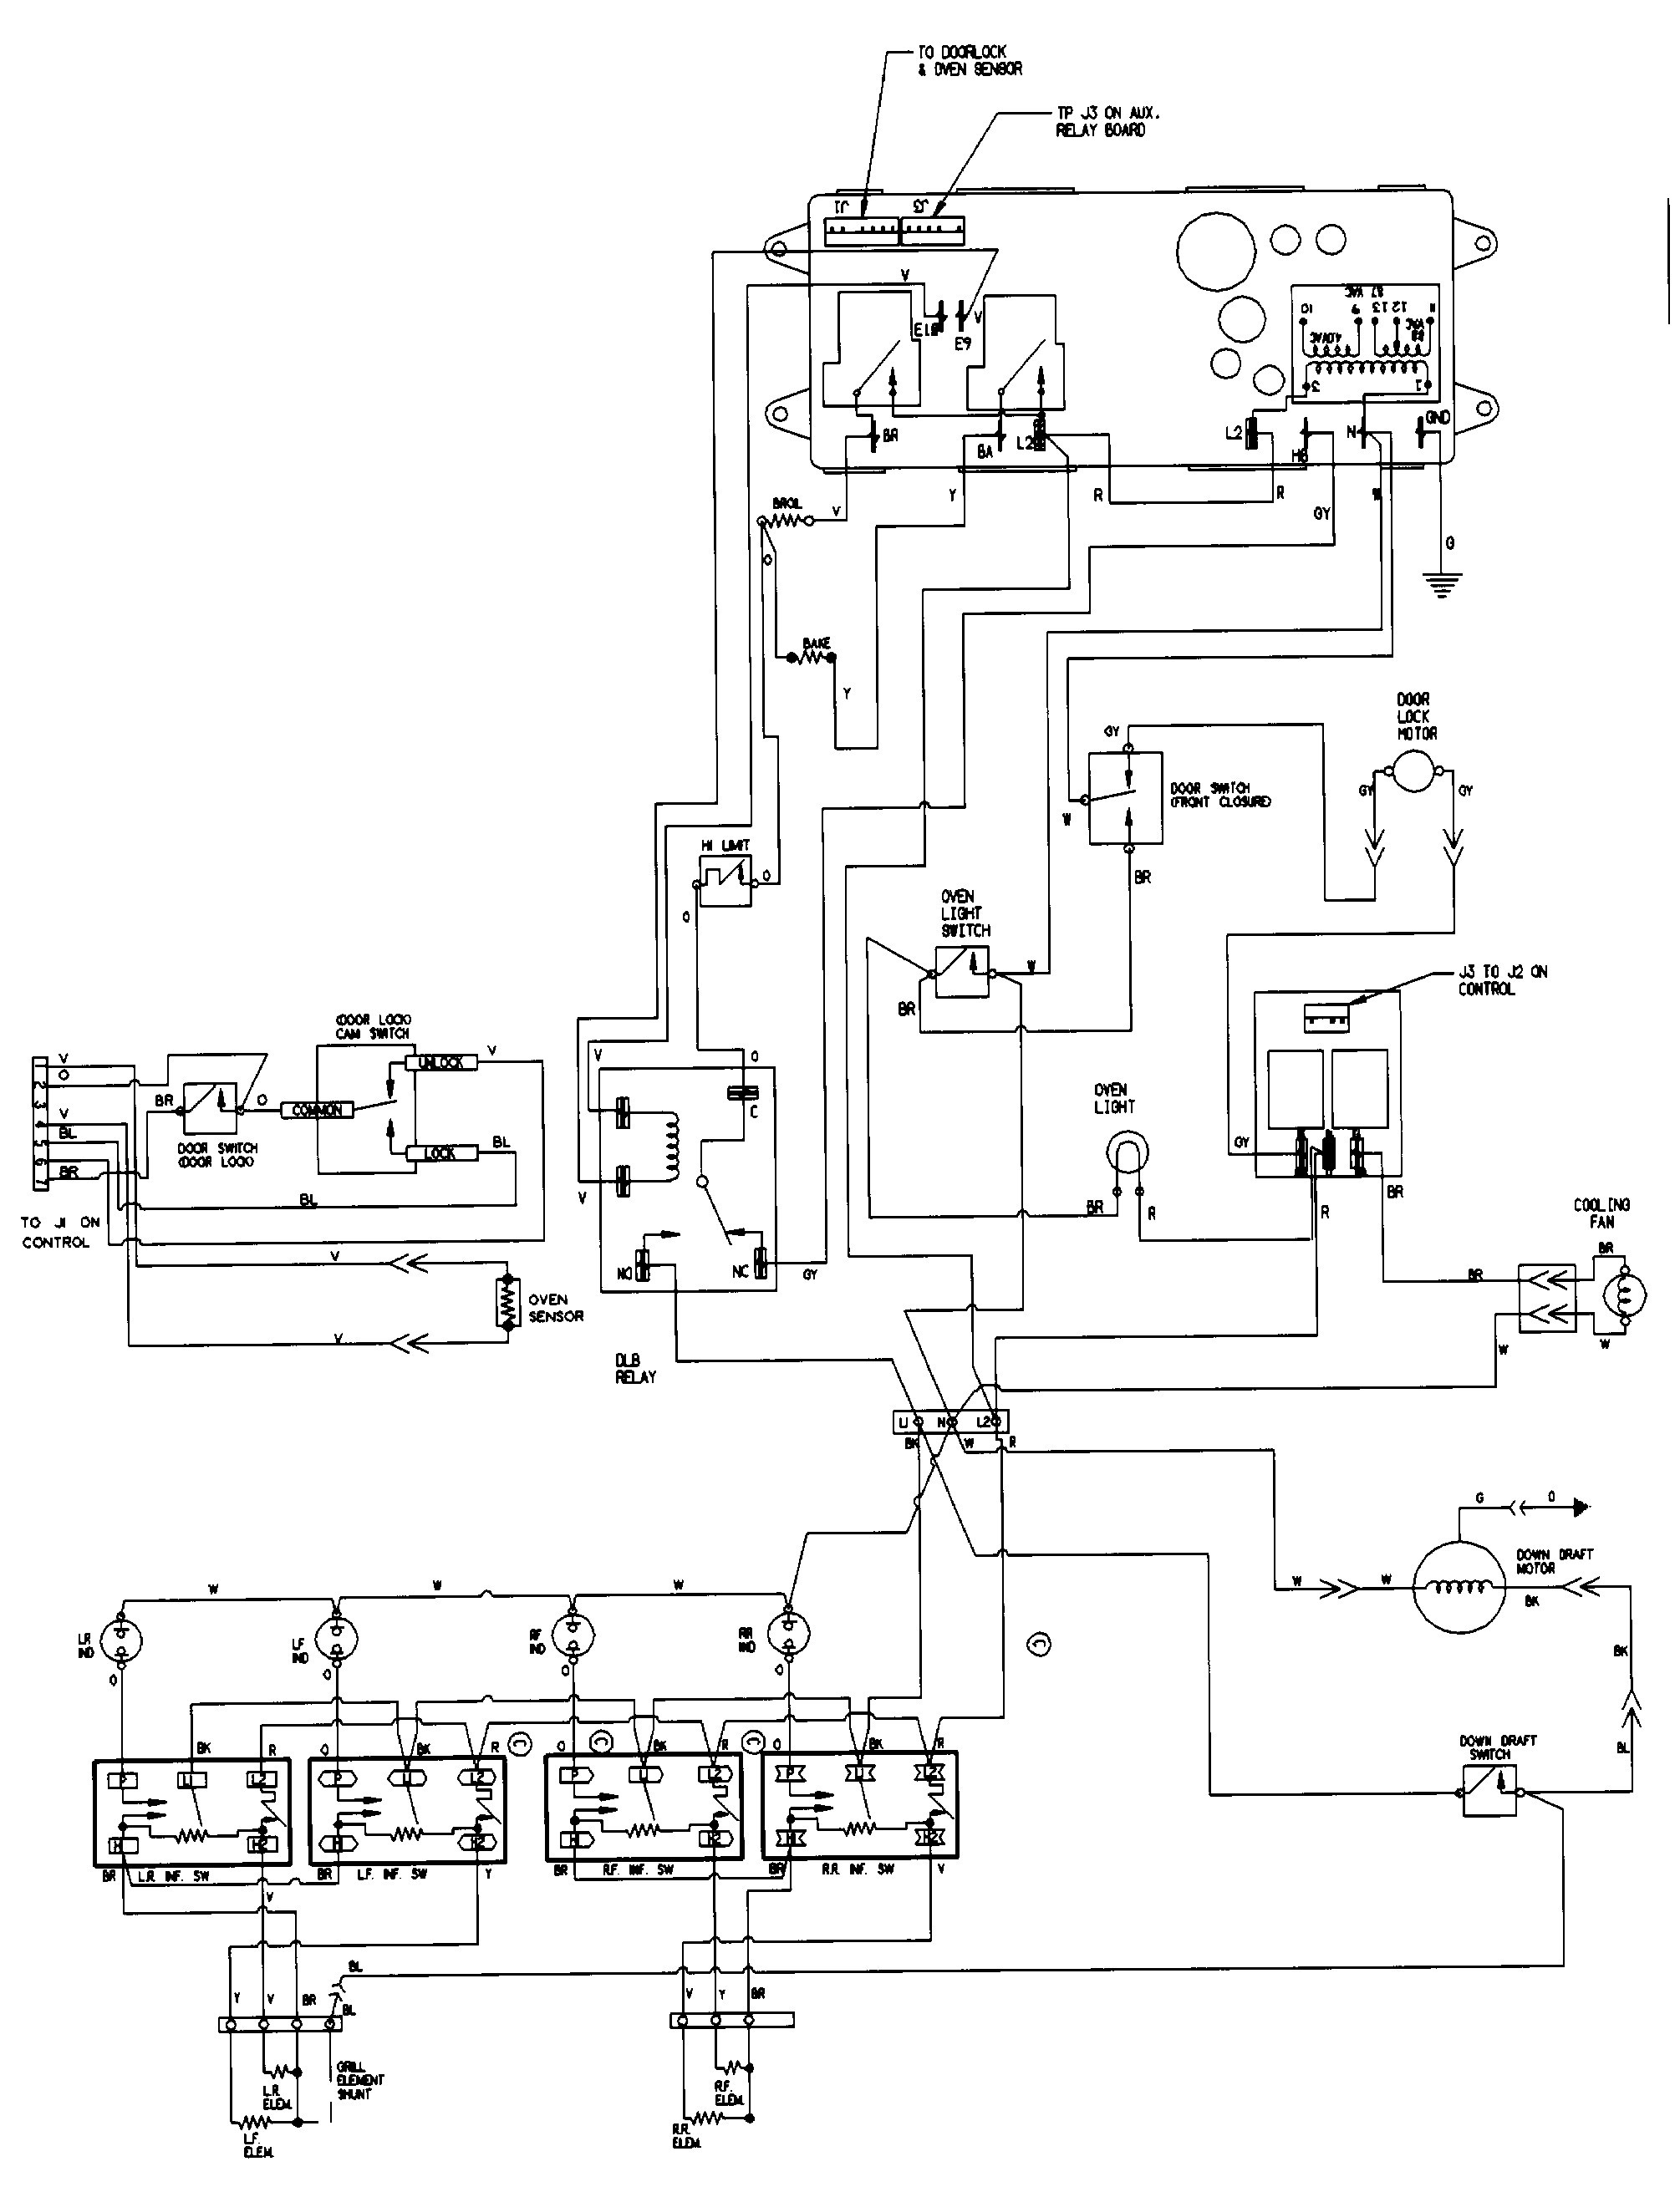 1995 mitsubishi mirage engine diagram